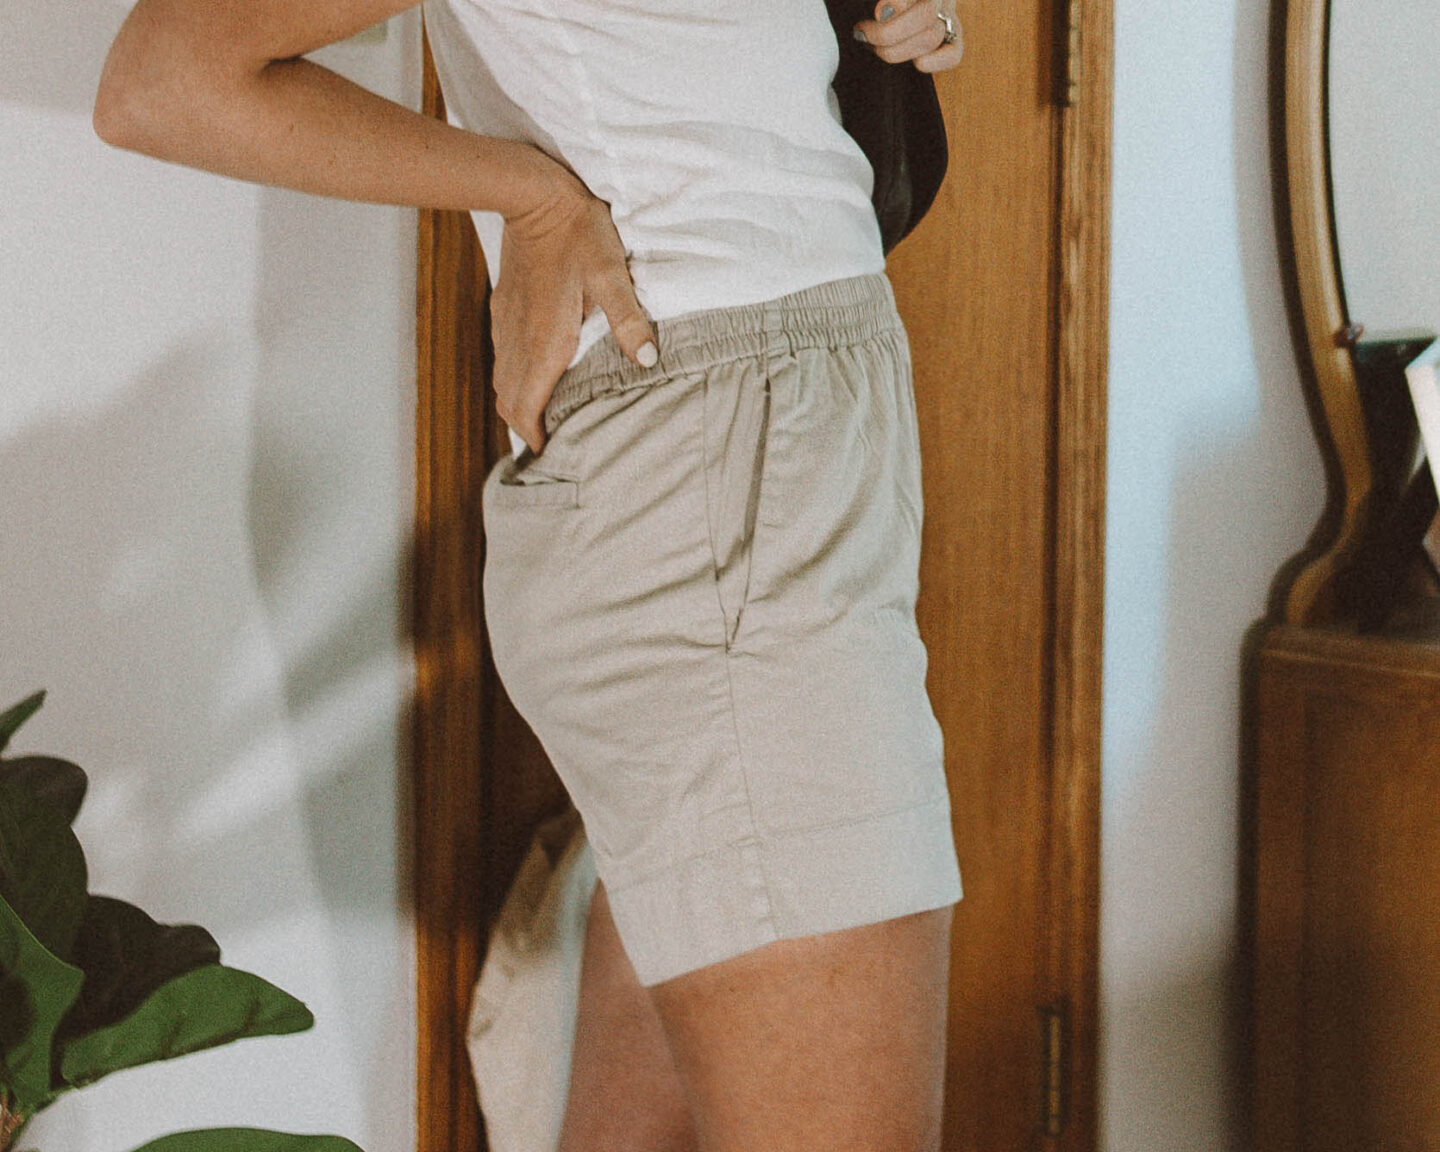 Everlane Shorts Guide, Easy Chino Short